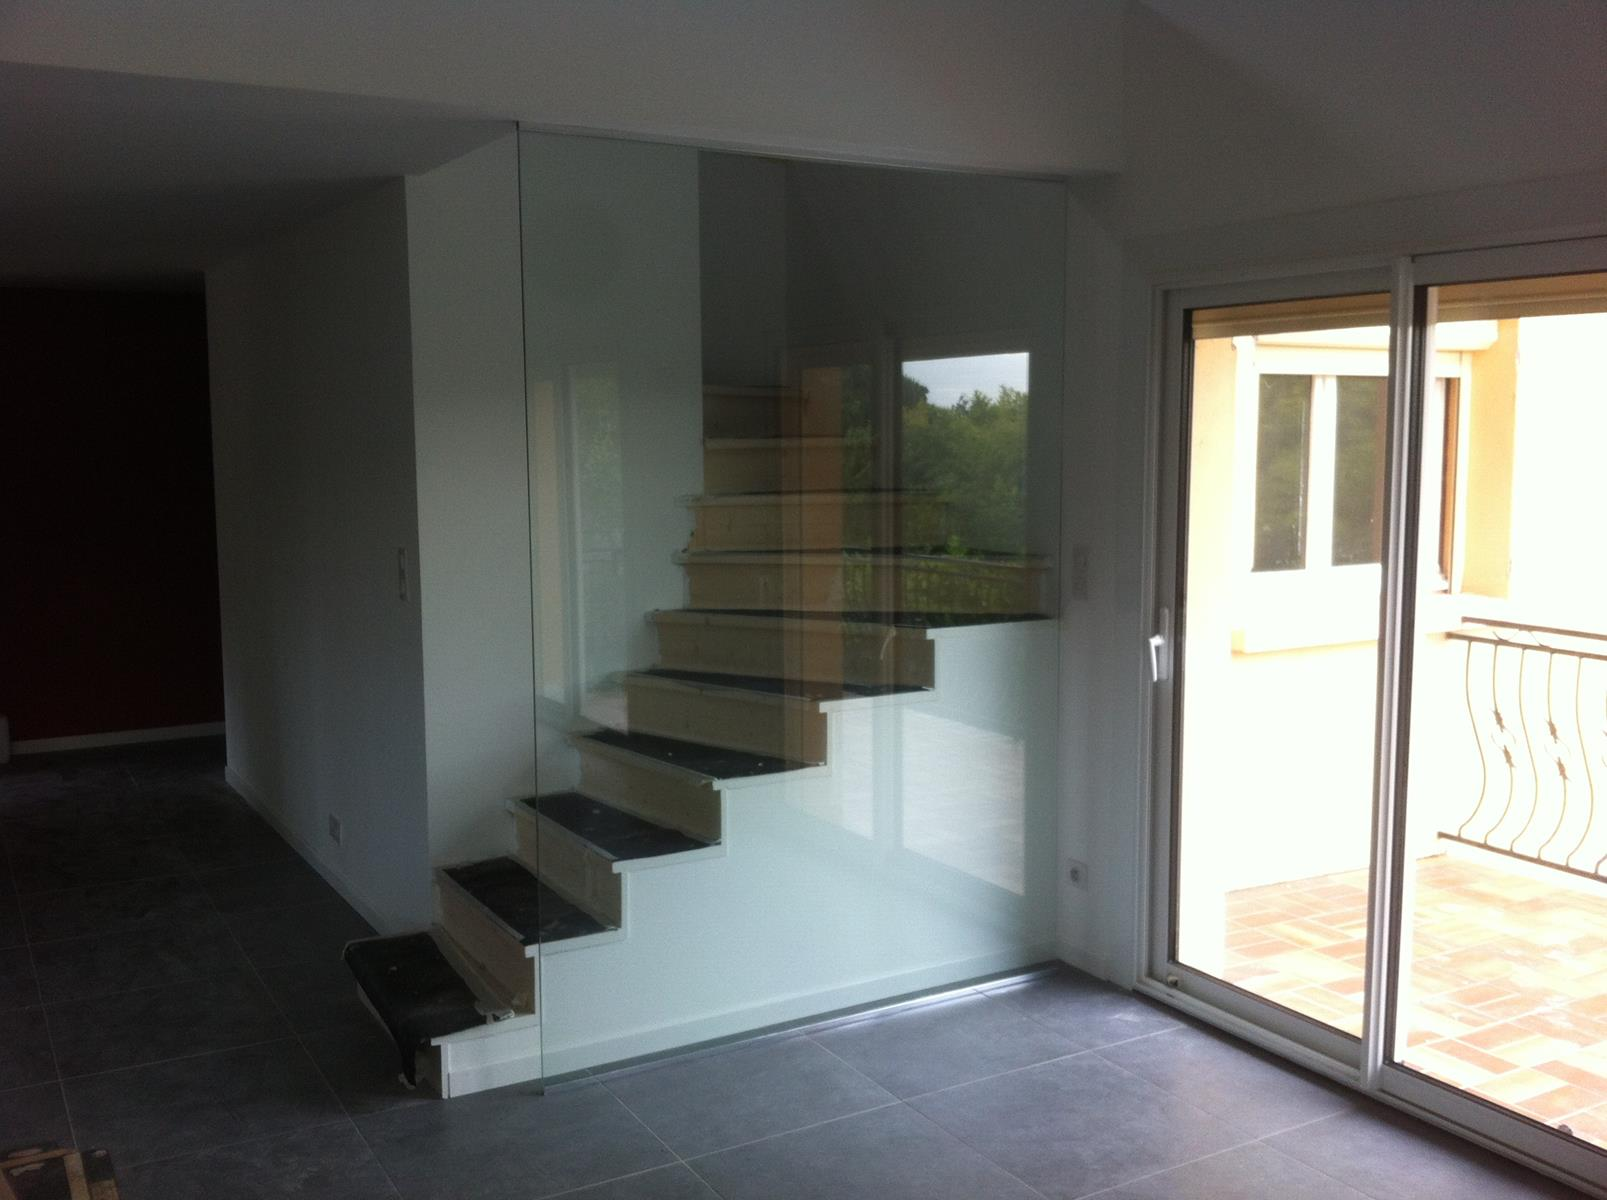 Am nagement int rieur siala for Cloison verre interieur